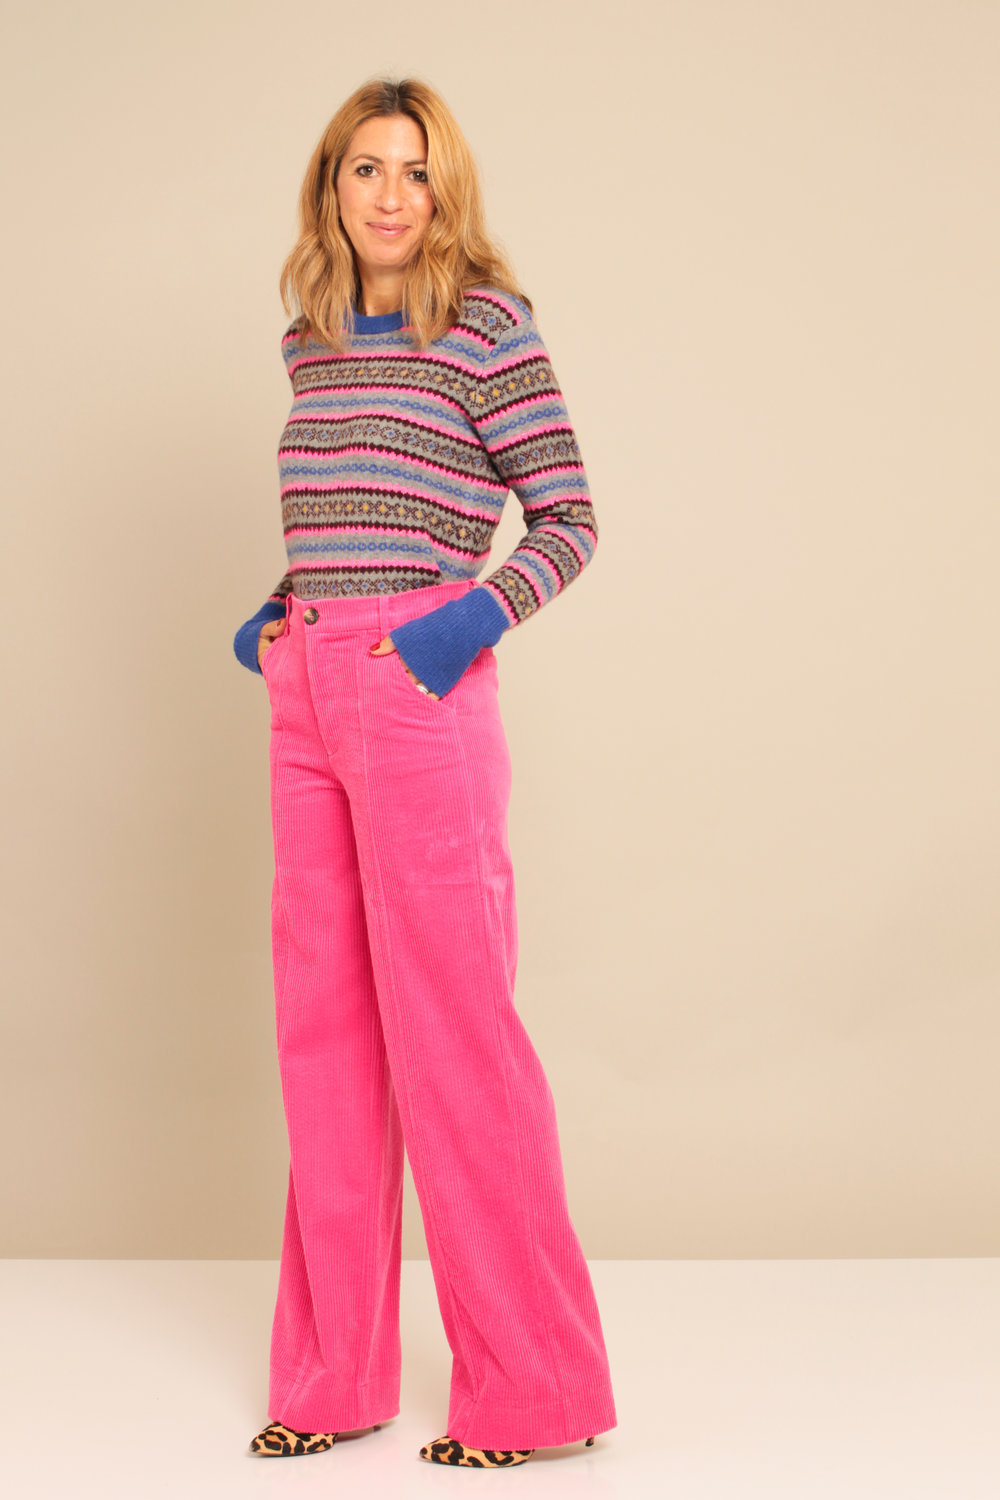 Jumper: £29.99  Zara  Super cute Great colours  Trousers: £29.99  Zara